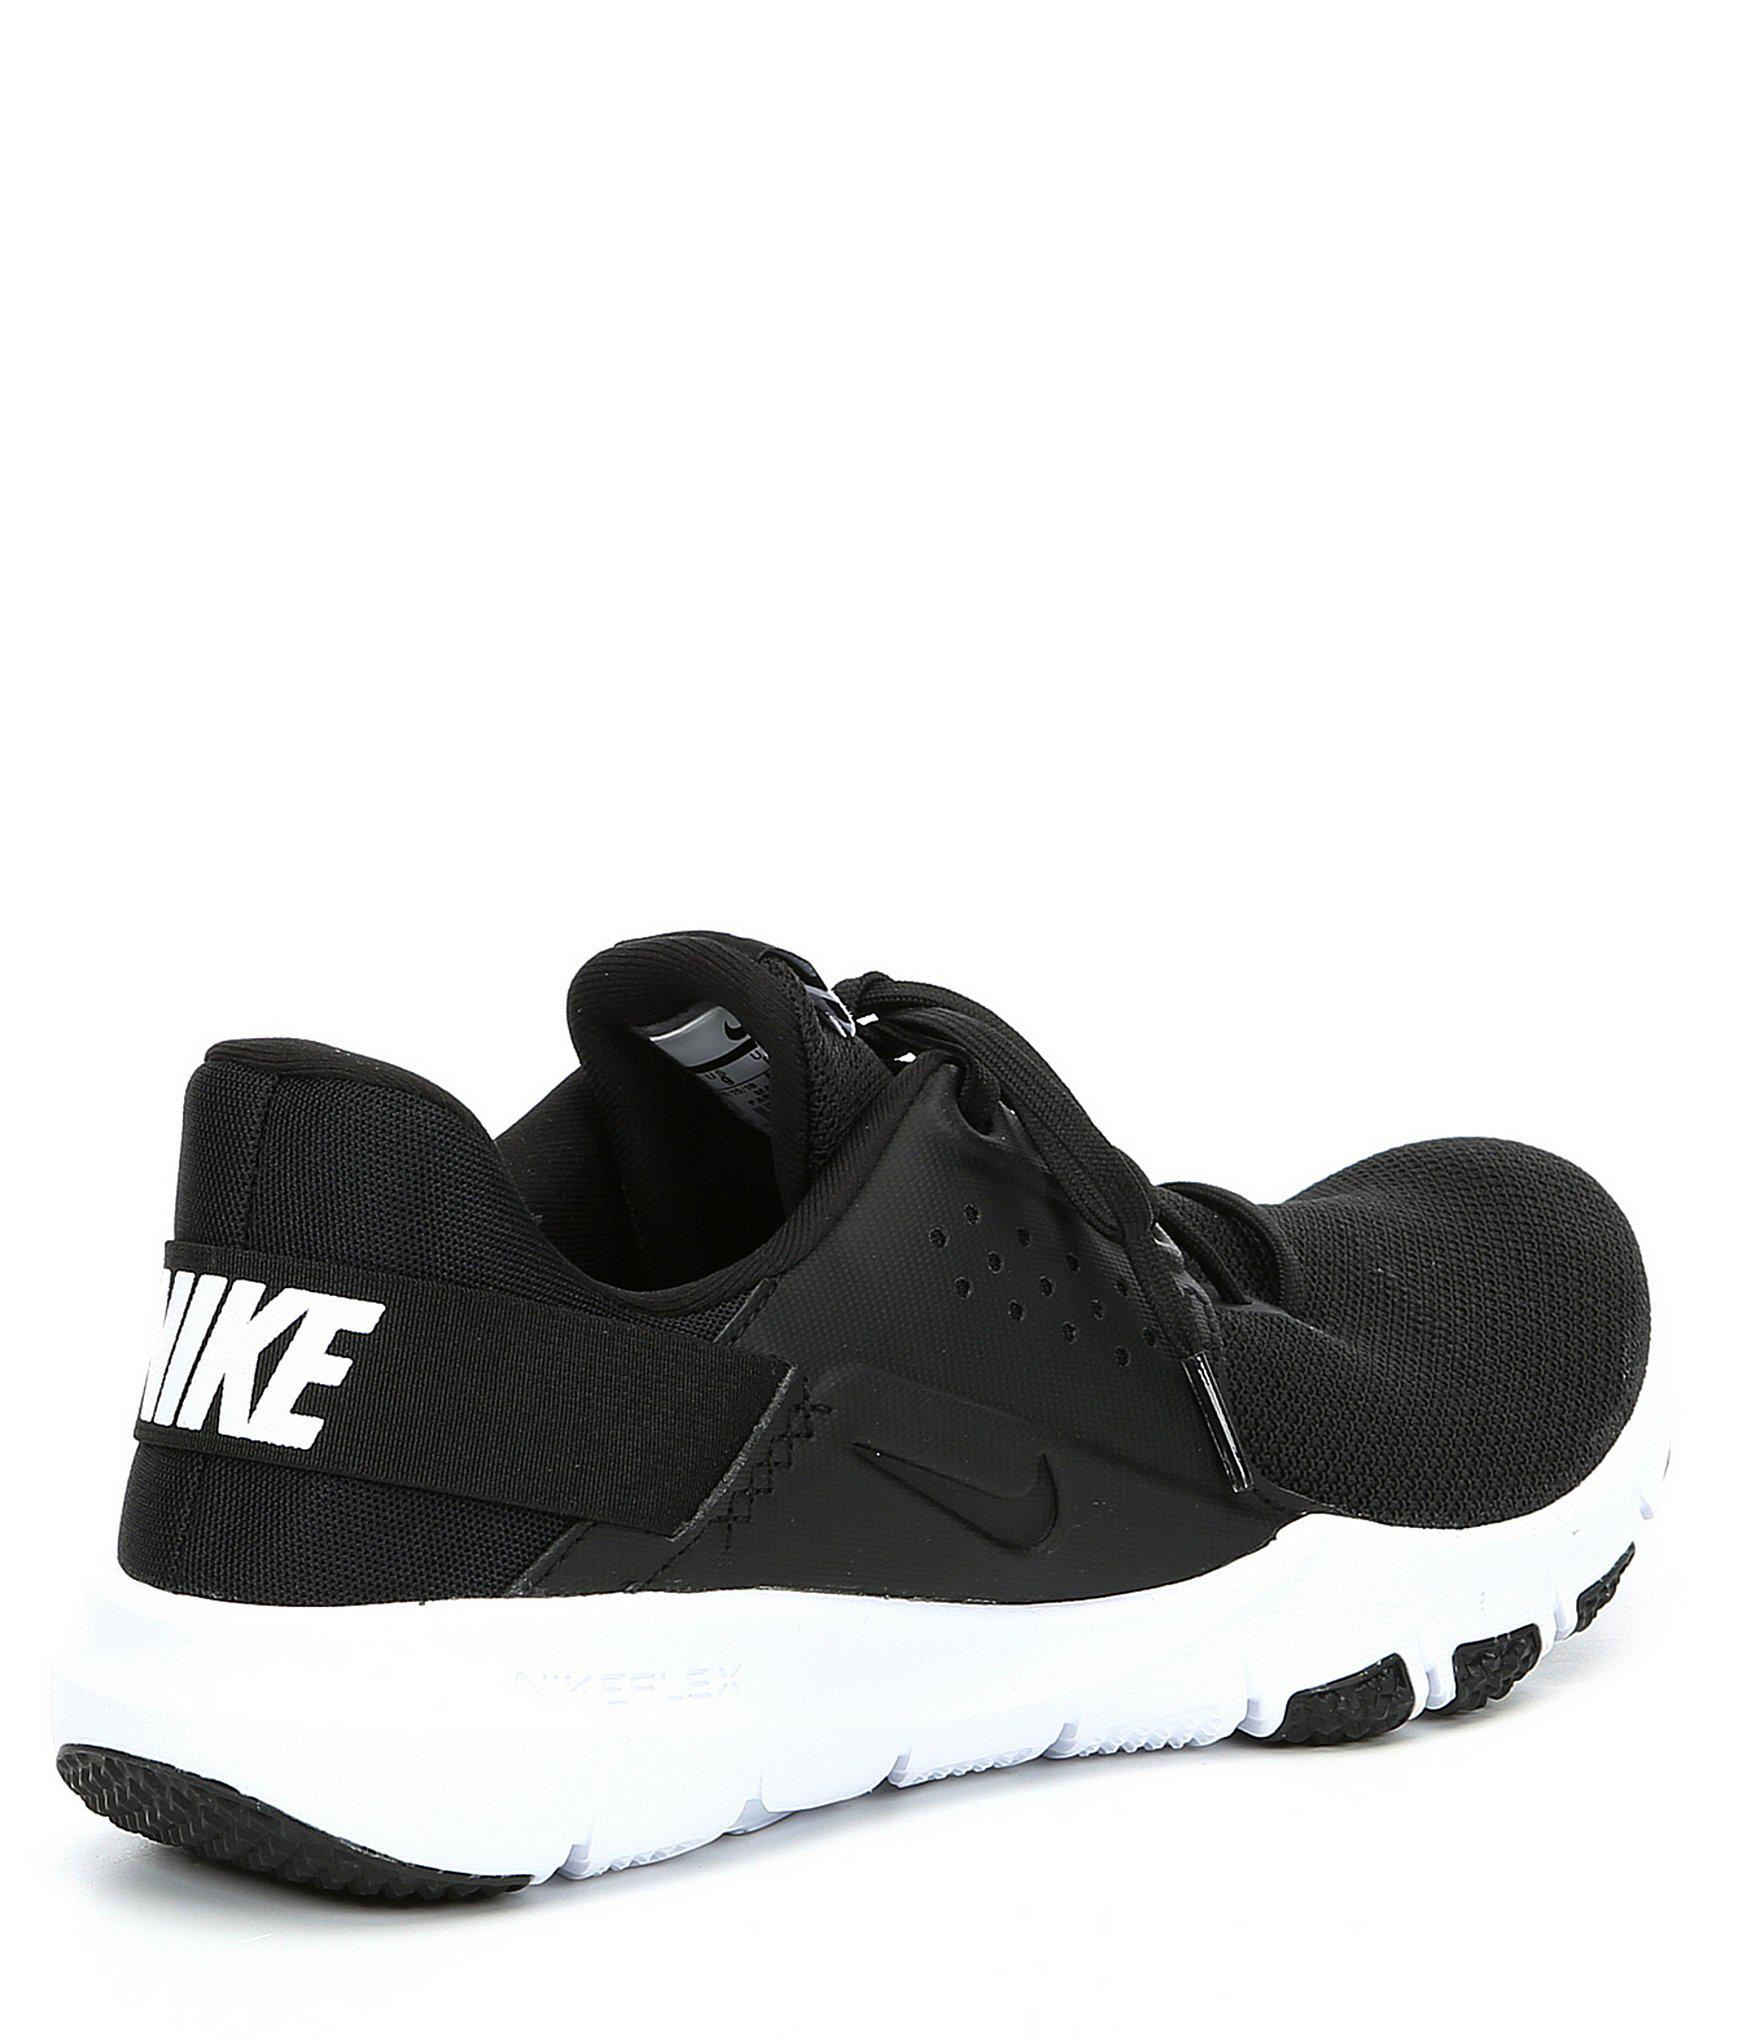 34ce4f4fd71d4 Nike - Black Men s Flex Control Tr 3 Training Shoe for Men - Lyst. View  fullscreen